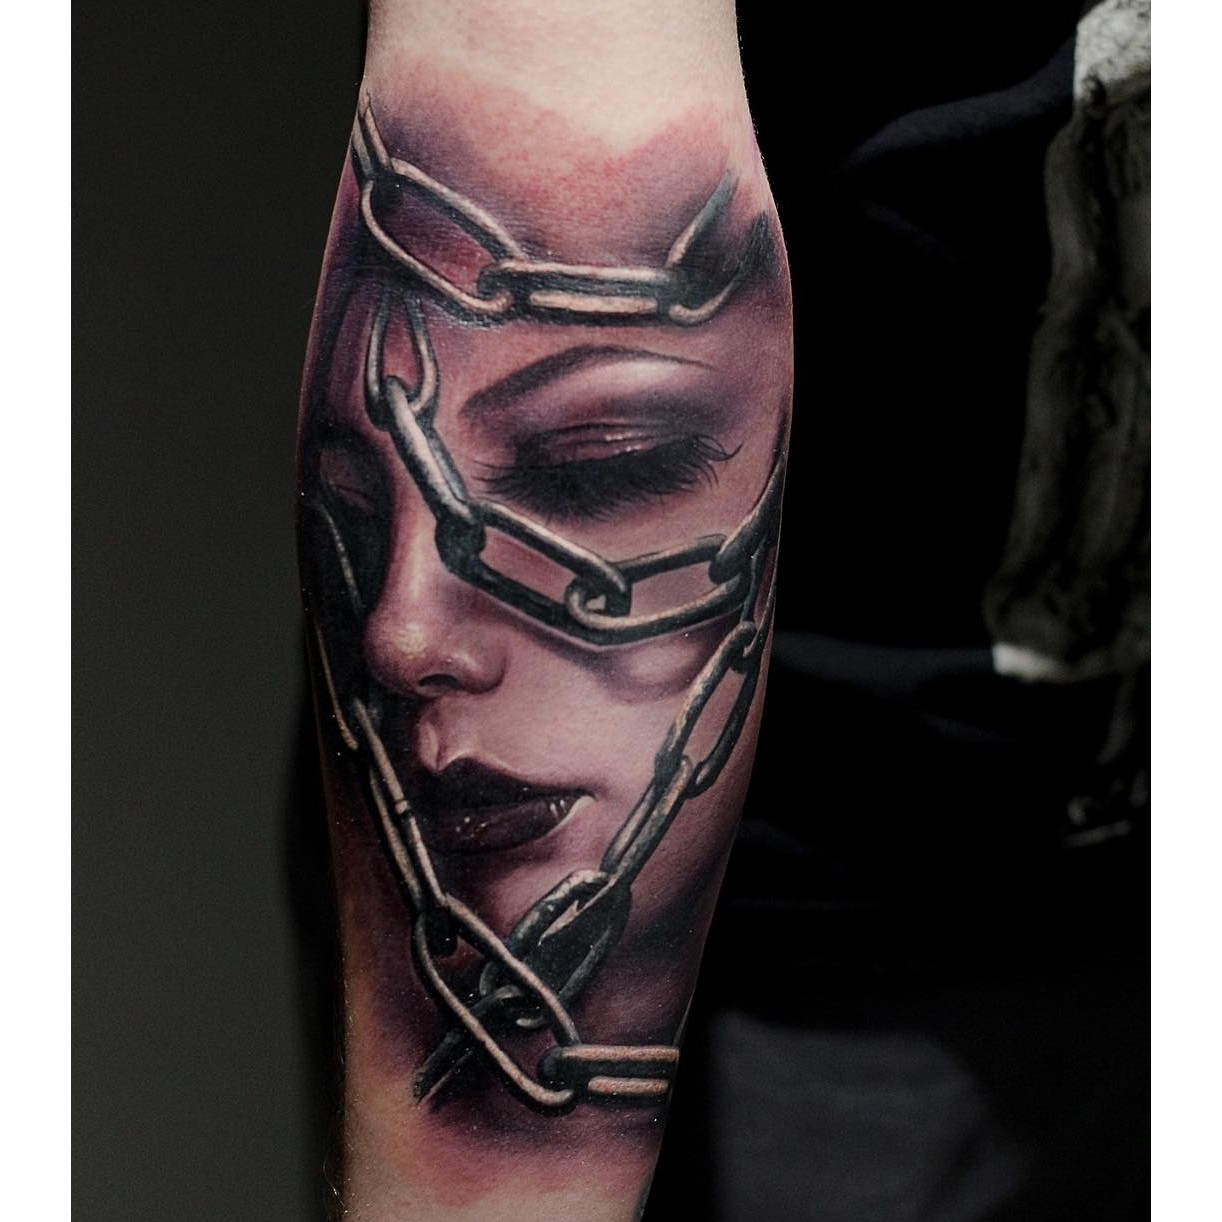 Sam Barber Tattoo- Find the best tattoo artists, anywhere